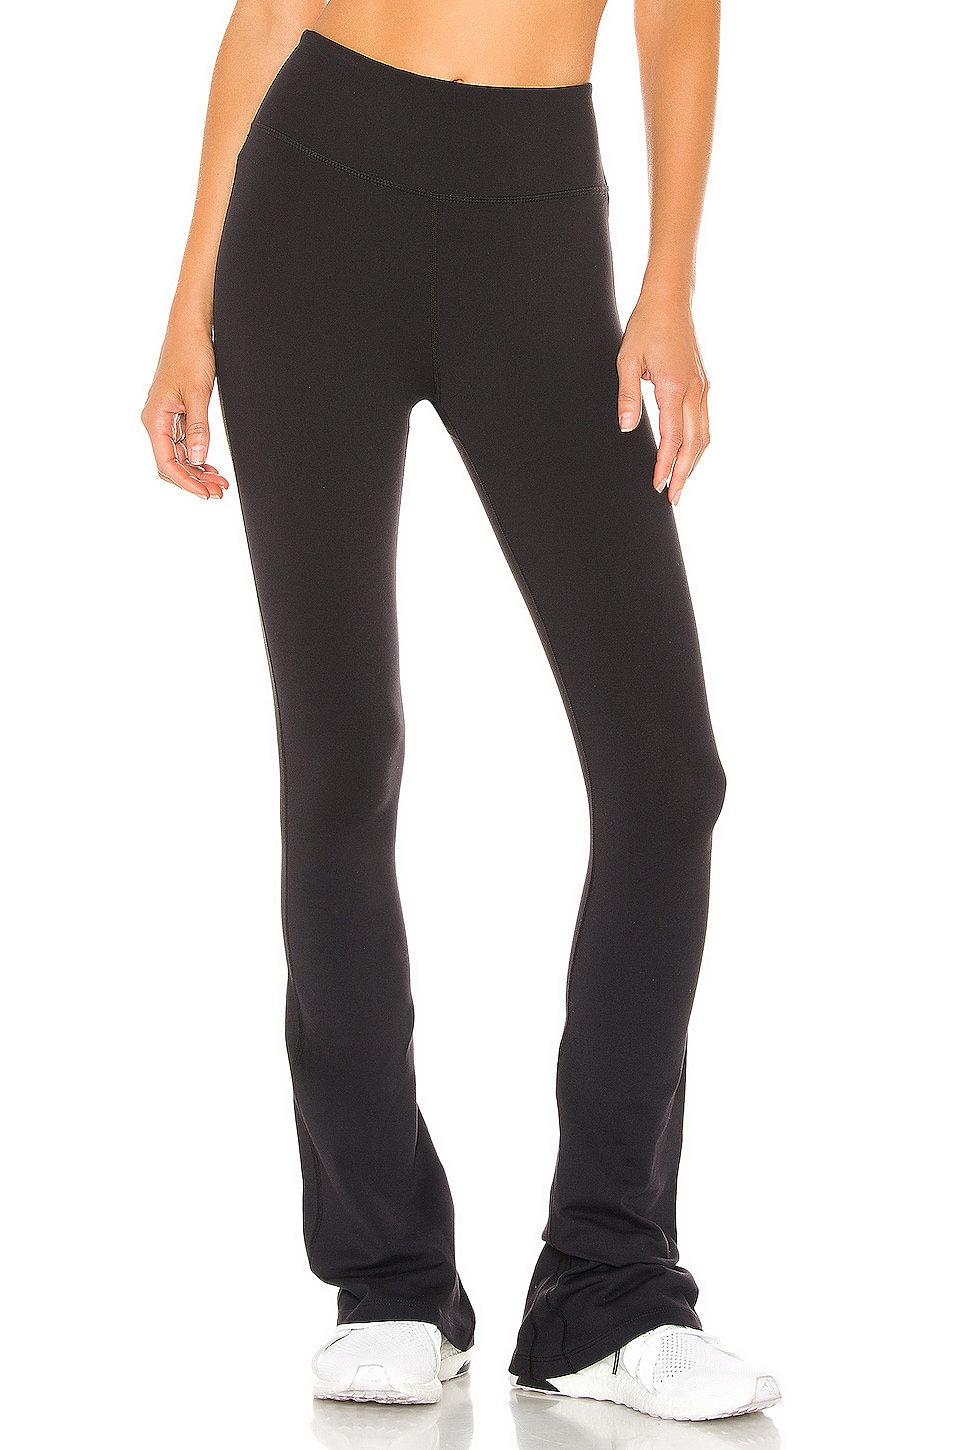 Splits59 Raquel Flared Pant in Black